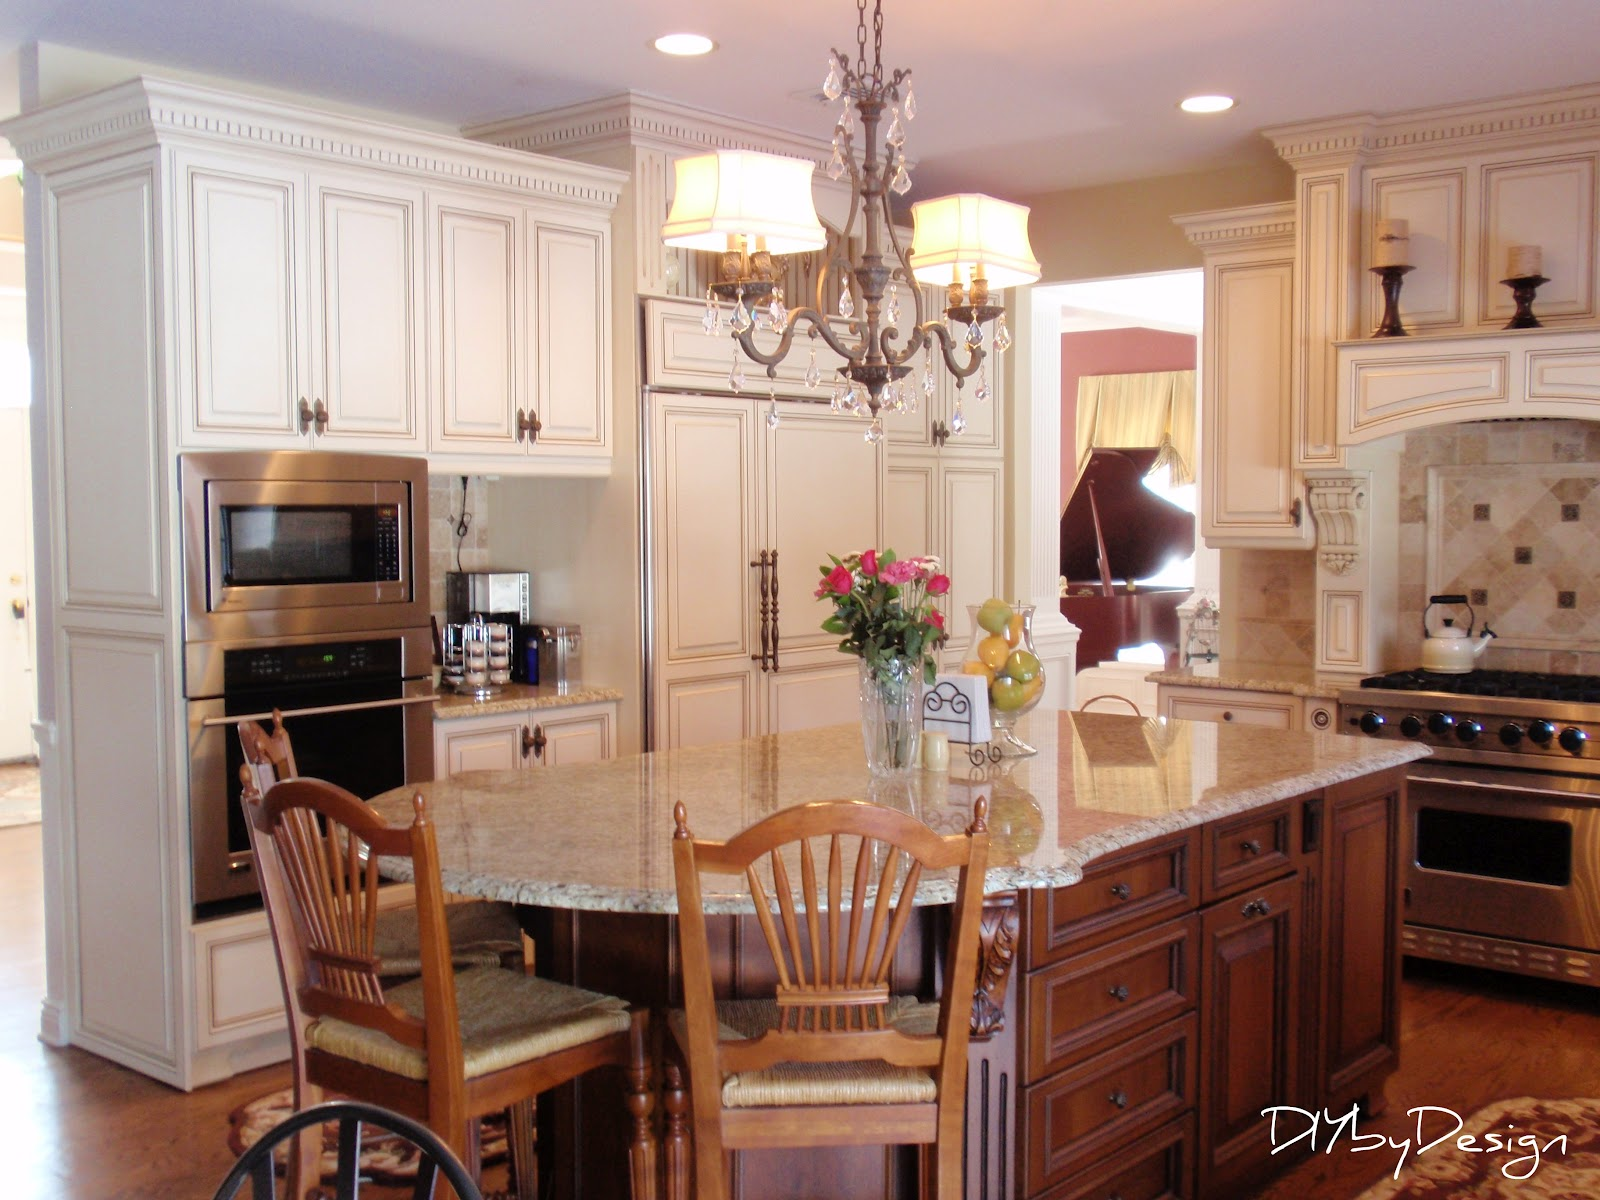 cabinets remodelaholic kitchen remodel a total transformation     100    abc tv kitchen cabinet     100 abc tv kitchen cabinet actor      rh   104 131 10 165